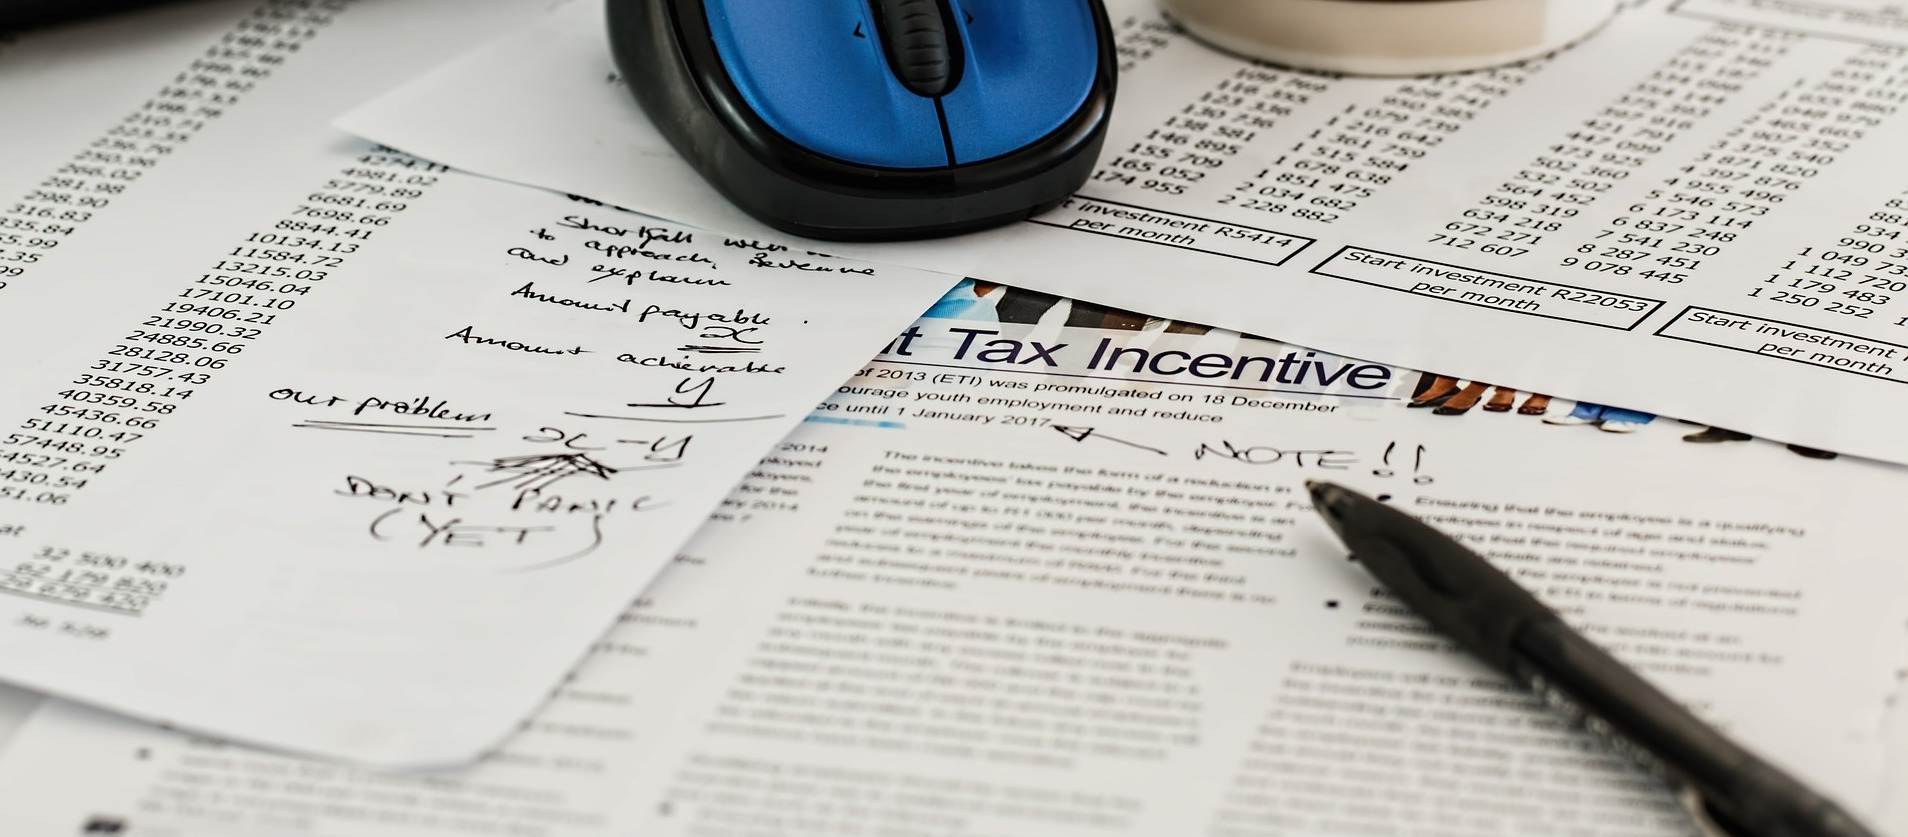 Stack of tax documents with handwritten notes